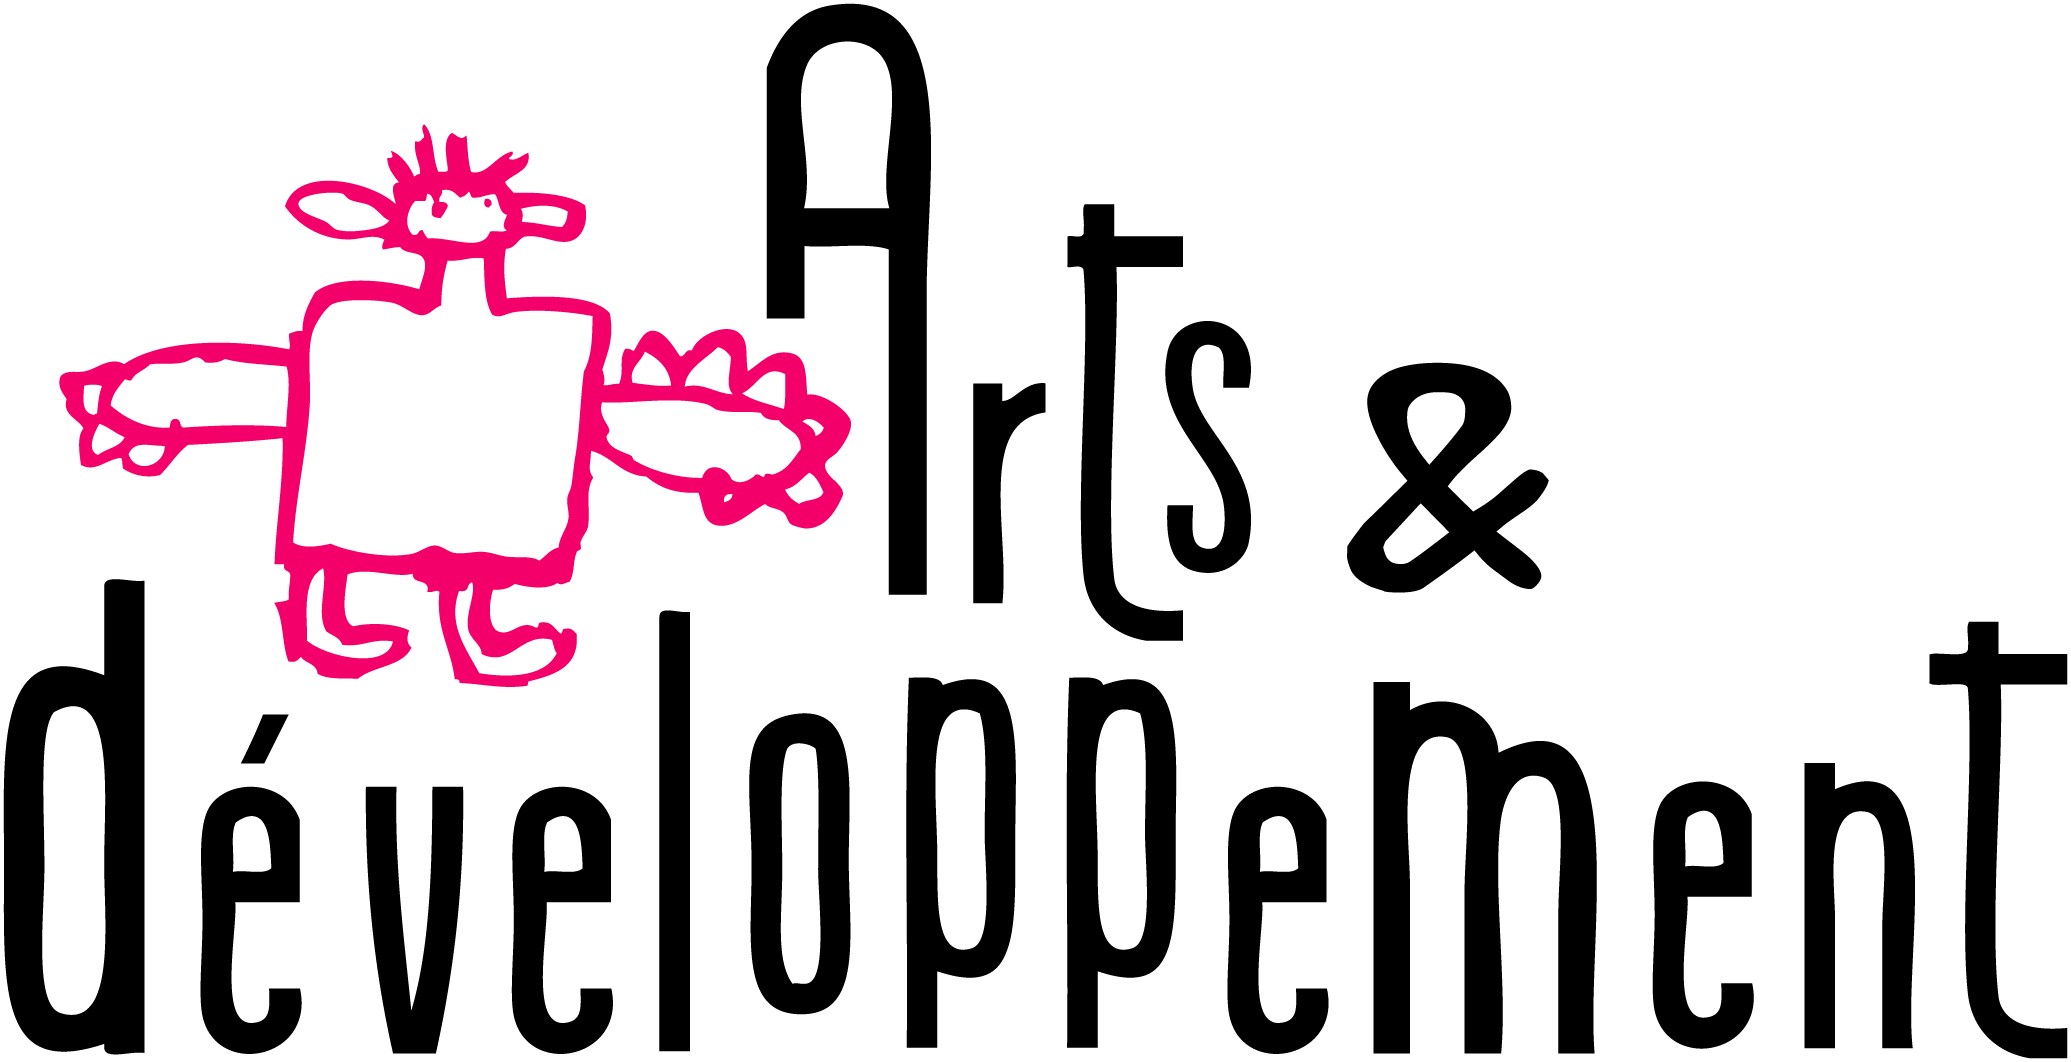 arts et developpement.jpg (Impression)